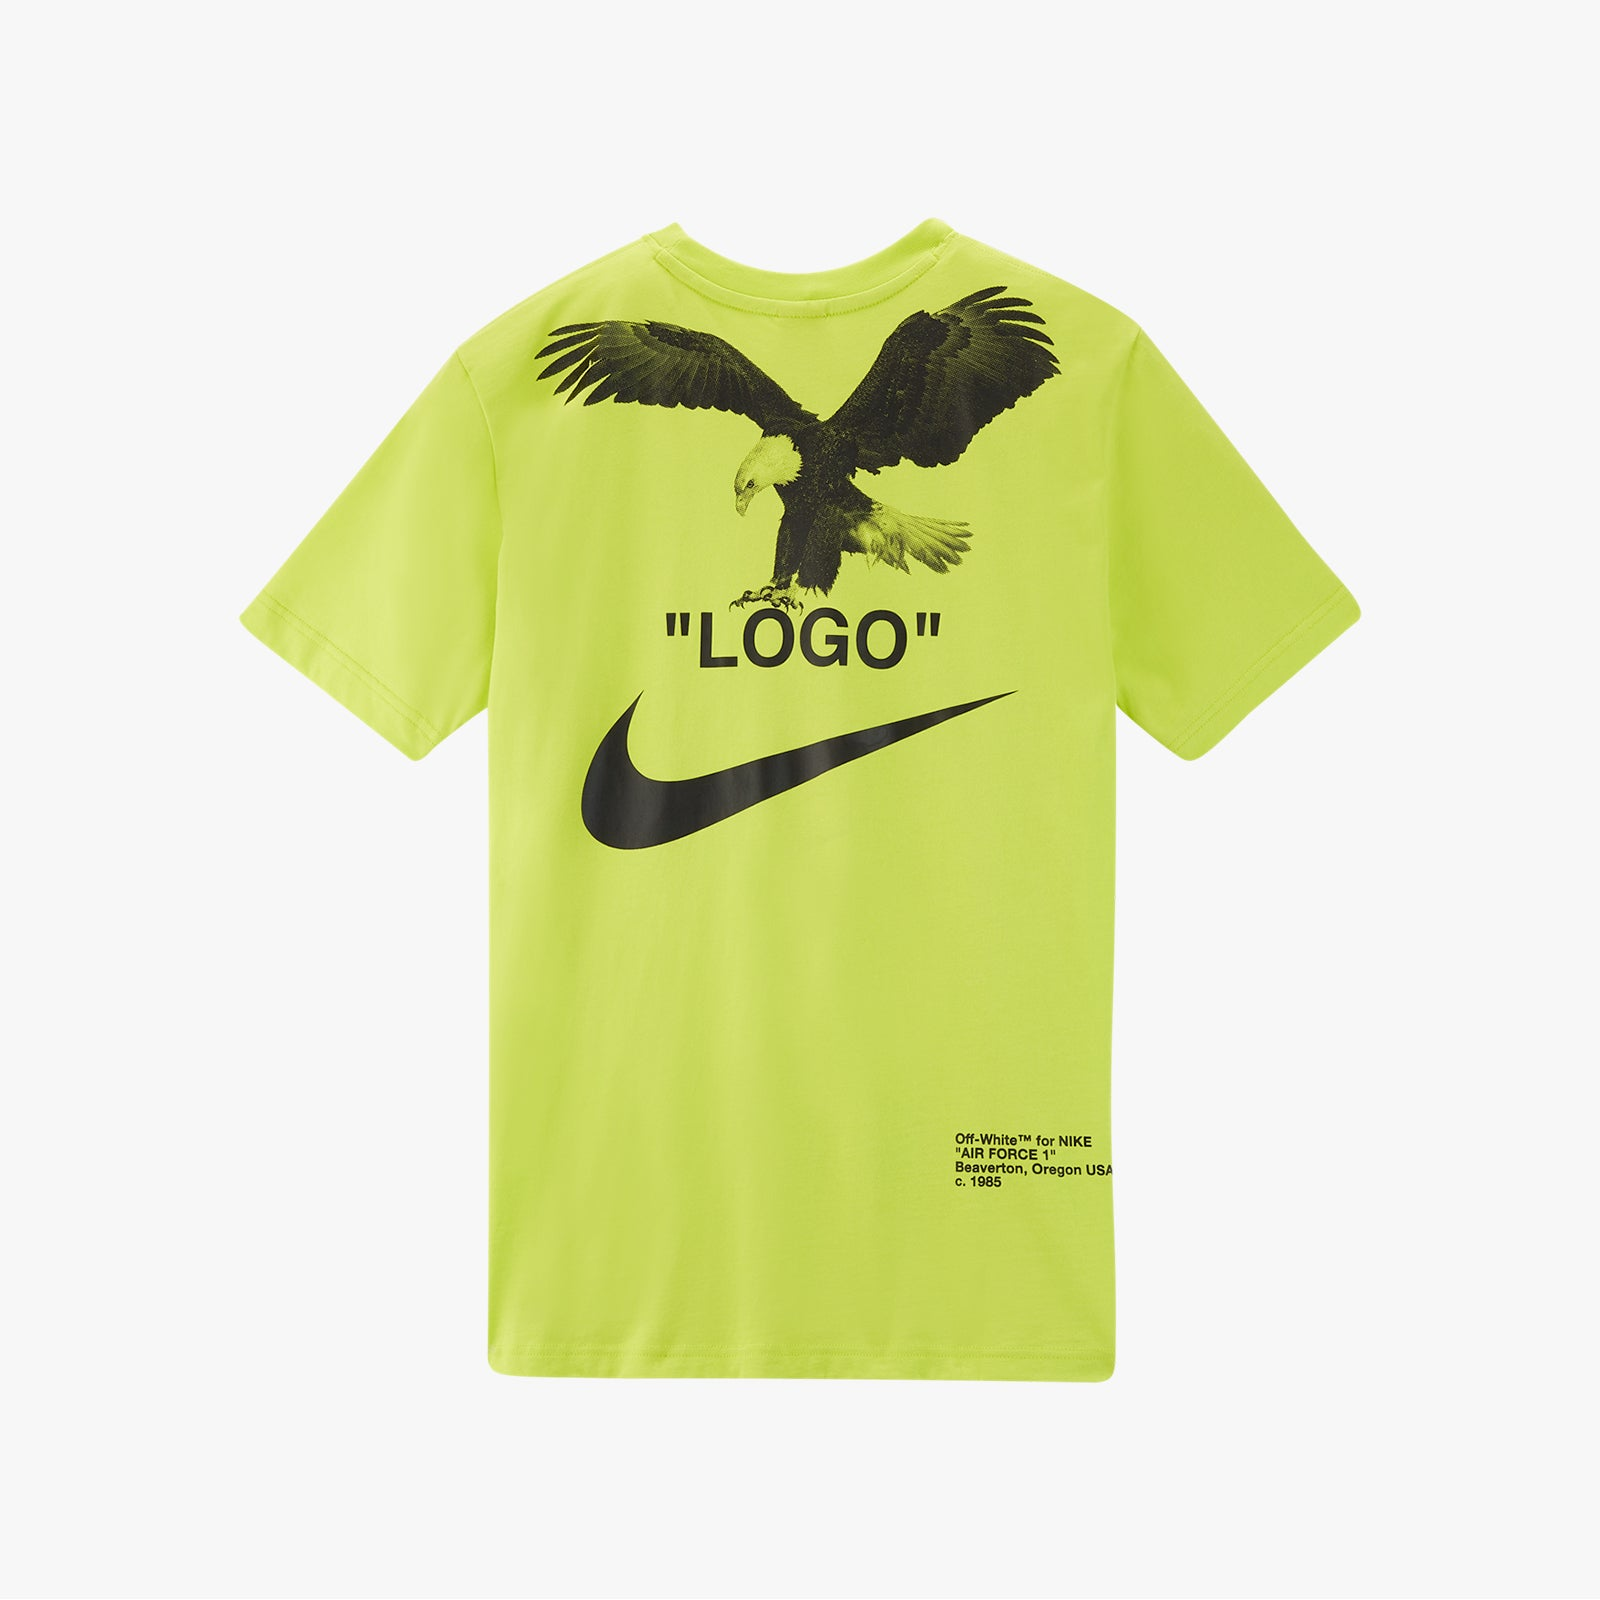 OFF-WHITE x Nike Tee - Lime Green   Supreme & Sneakers resell E-Shop - Prague-Boutique.cz